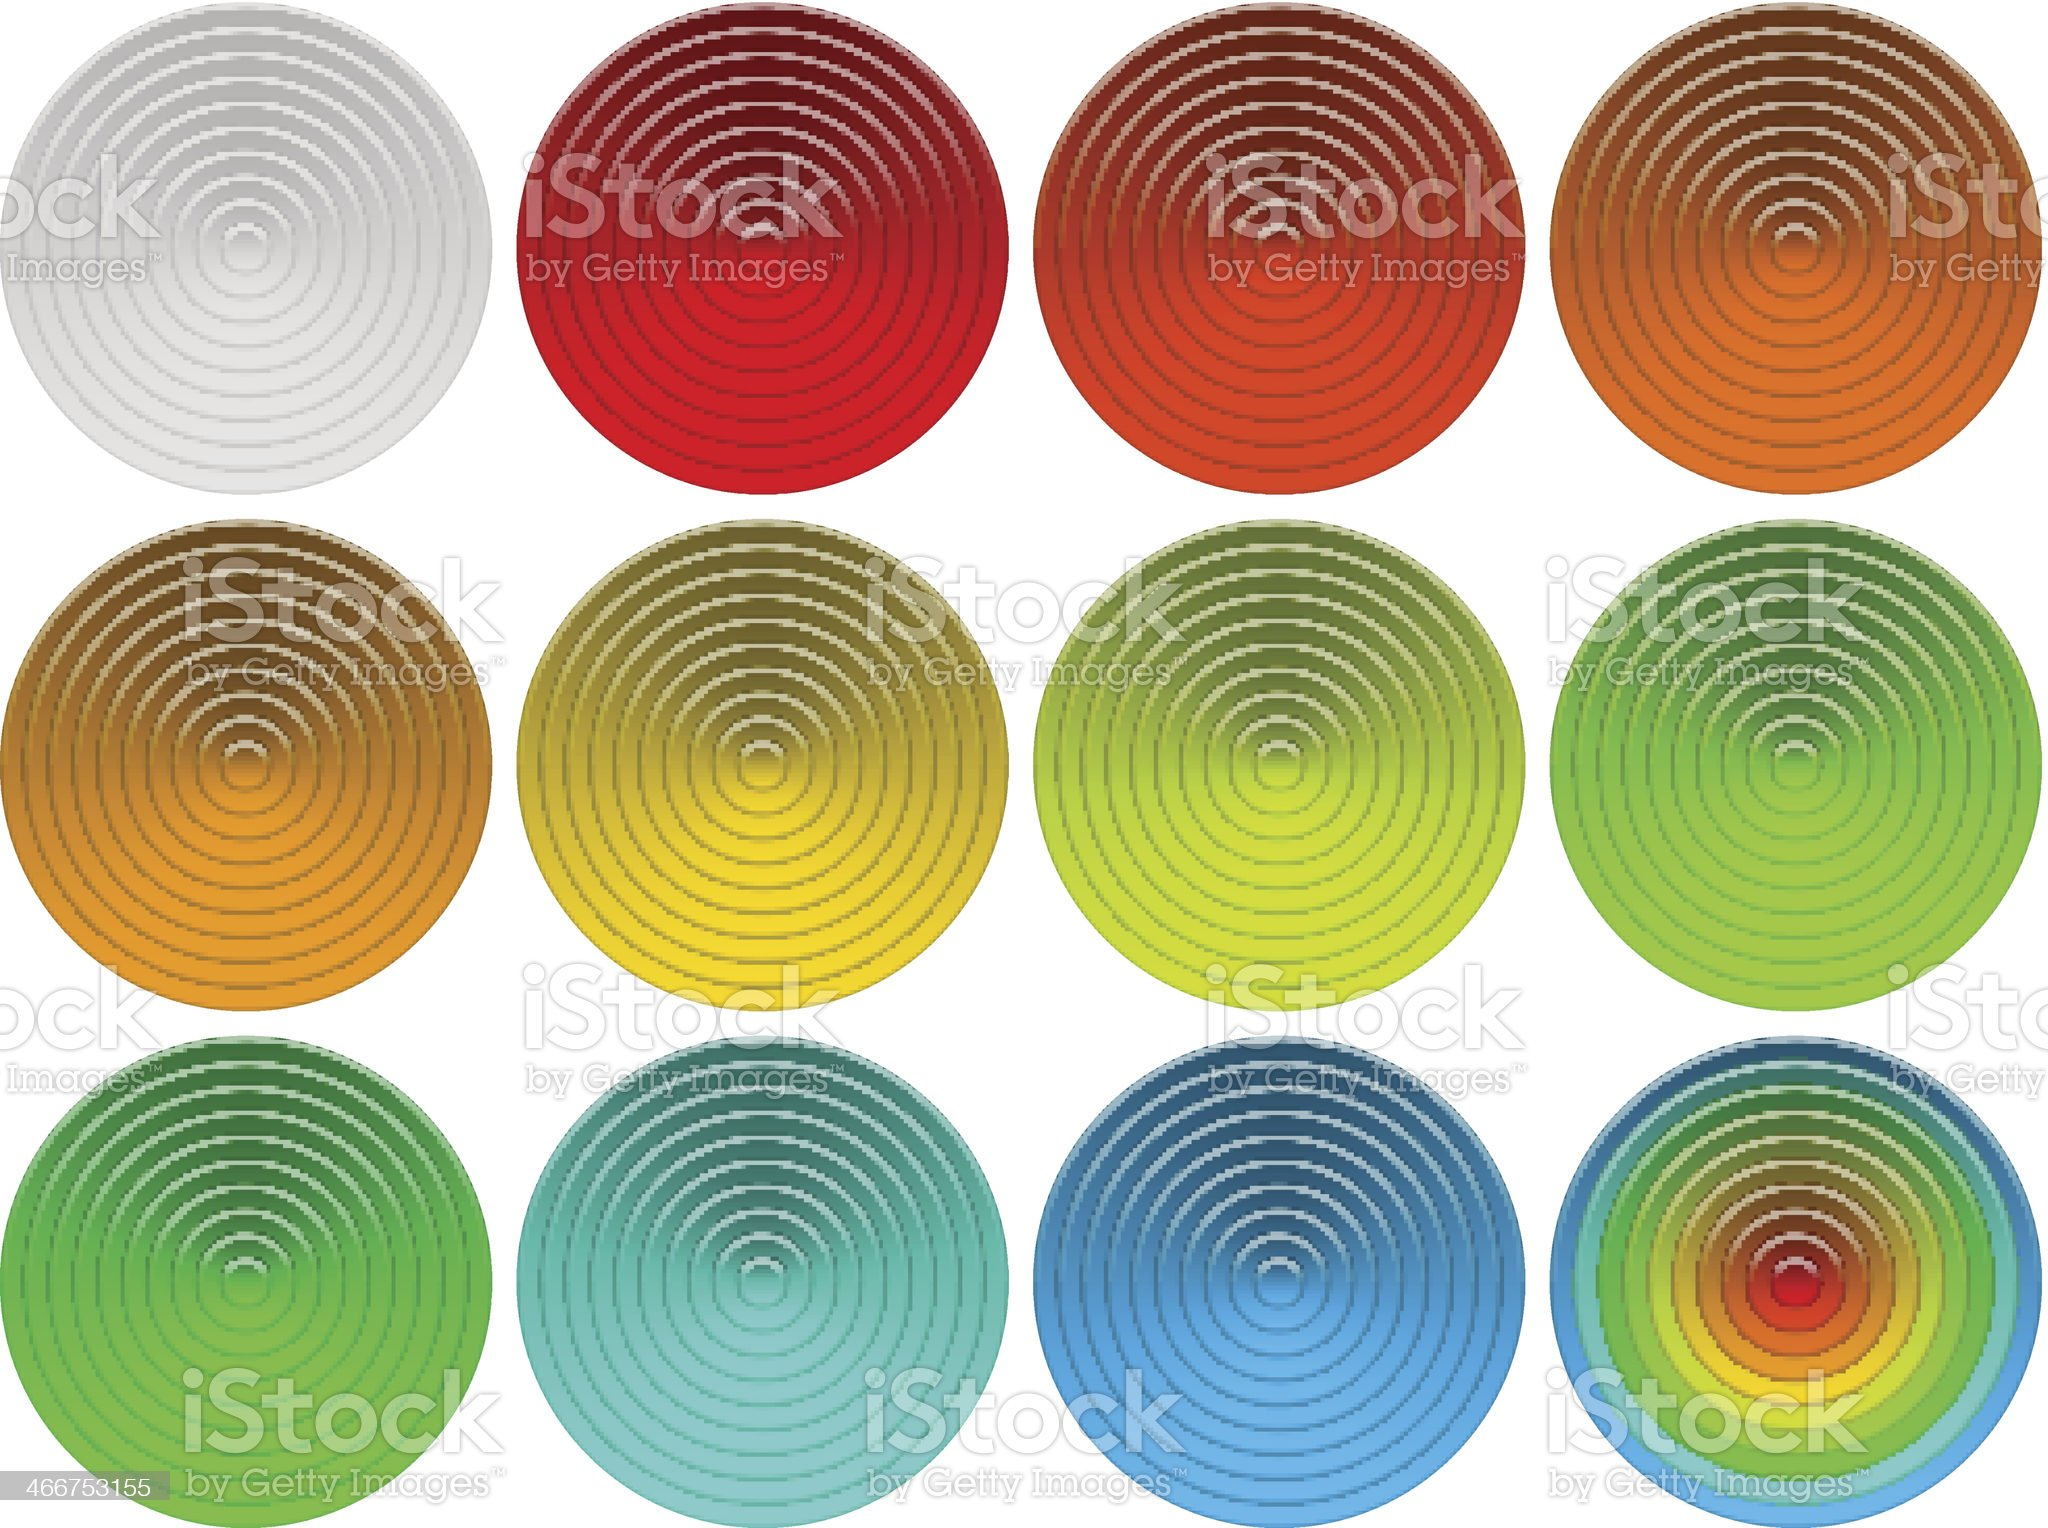 Glass round buttons set royalty-free stock vector art